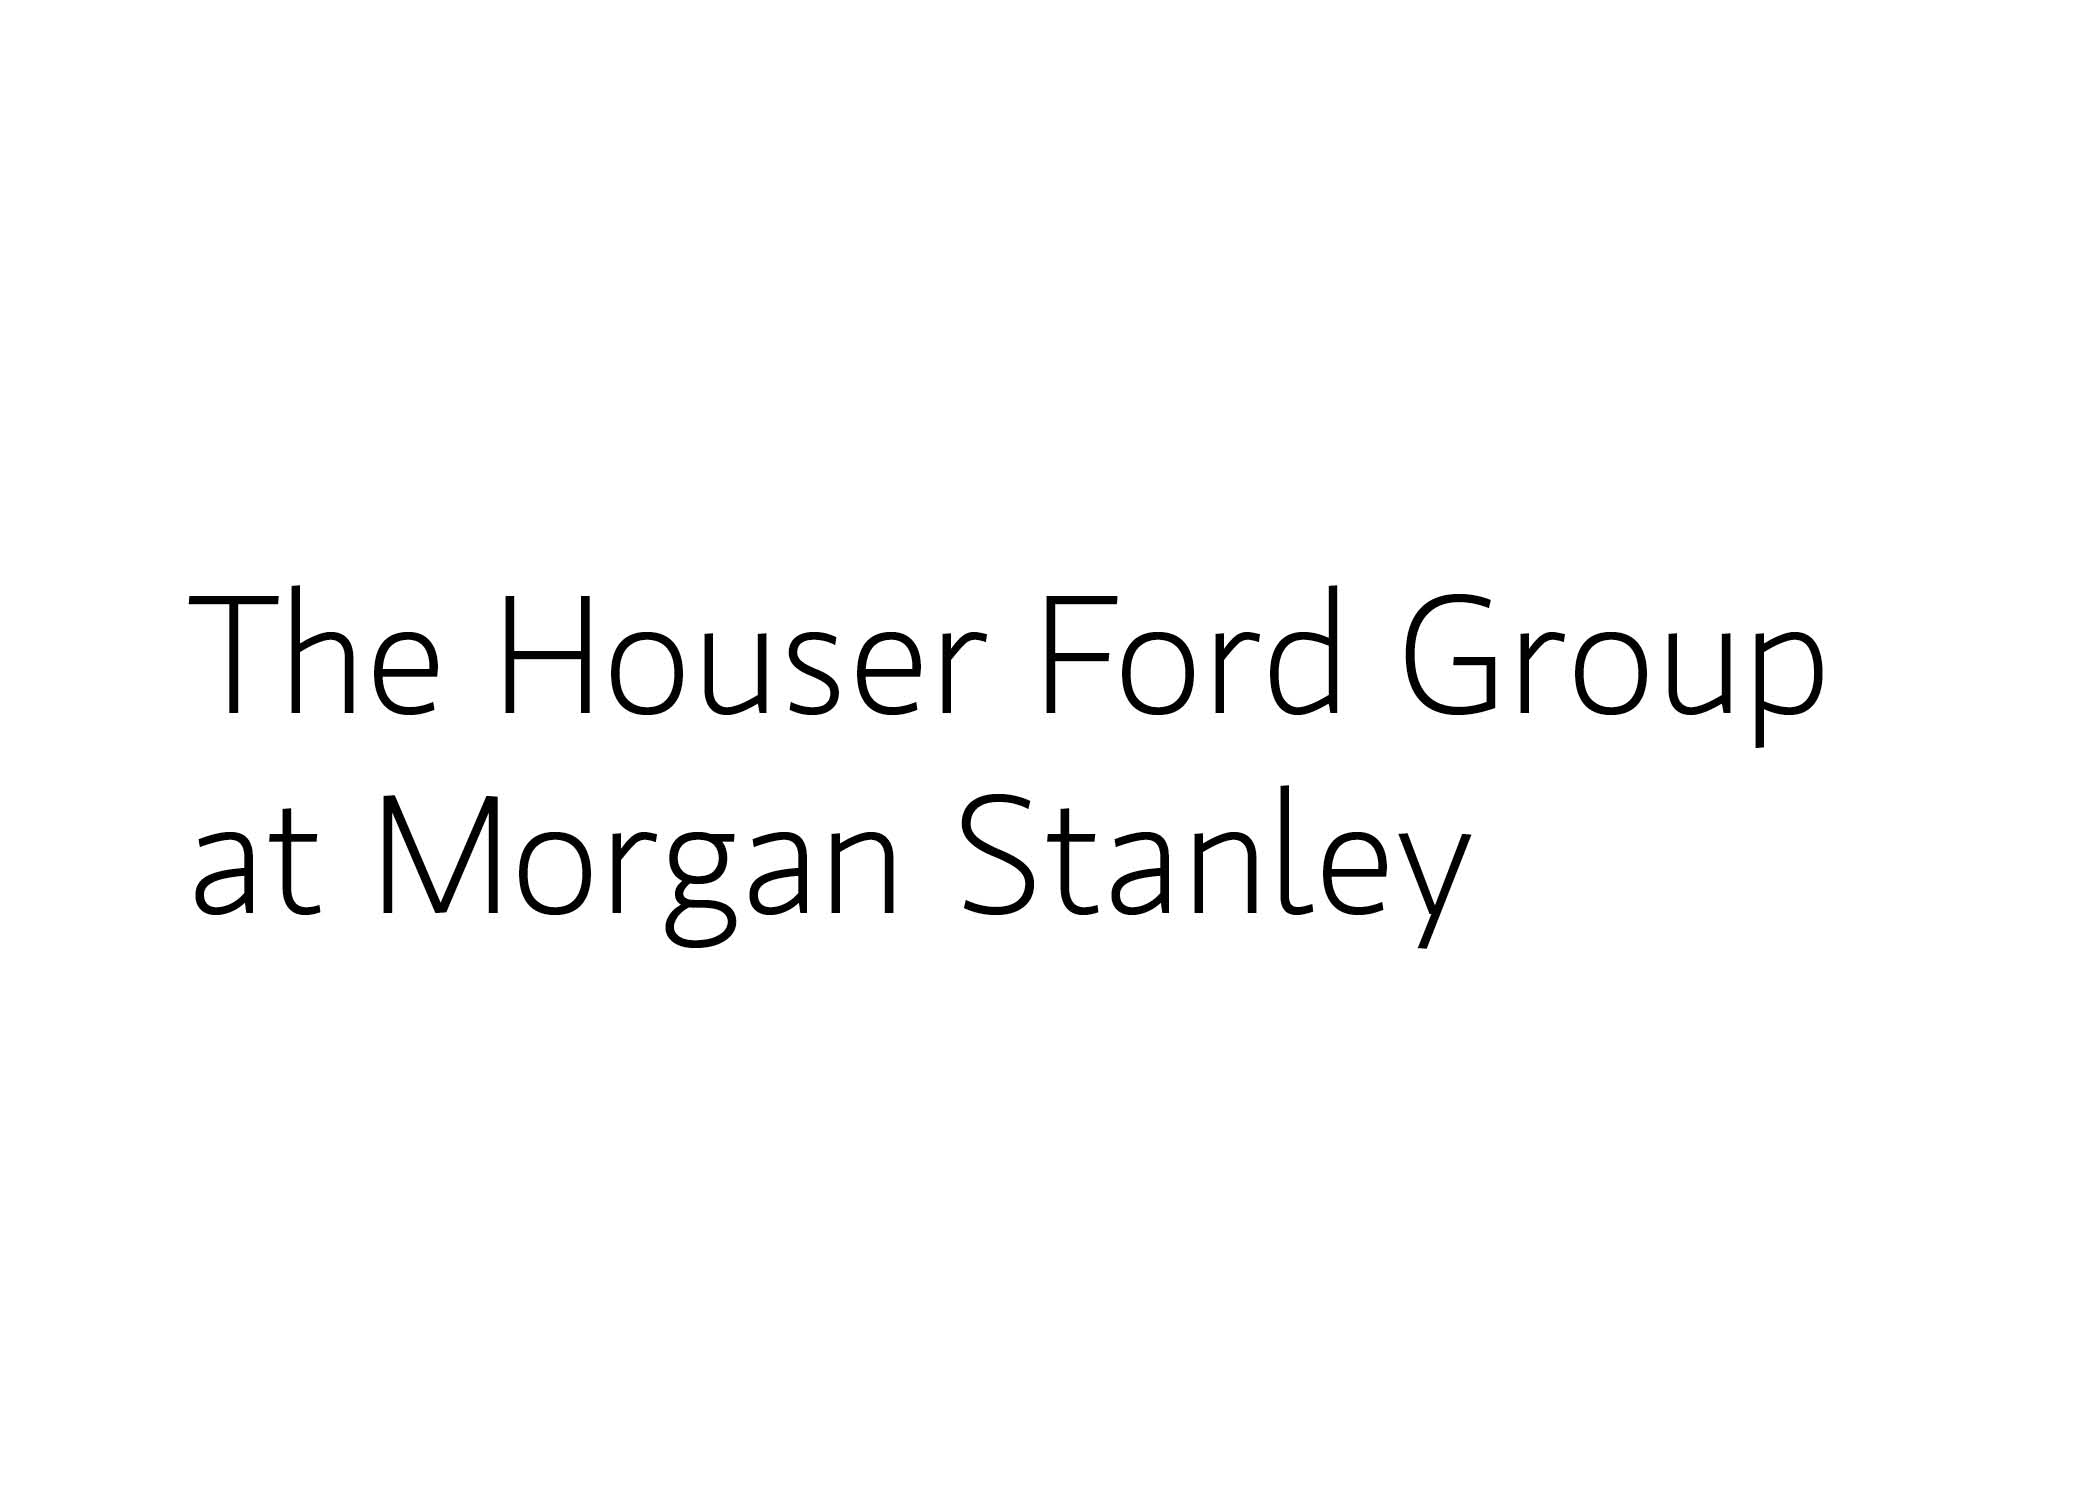 Houser Ford Group at Morgan Stanley Logo